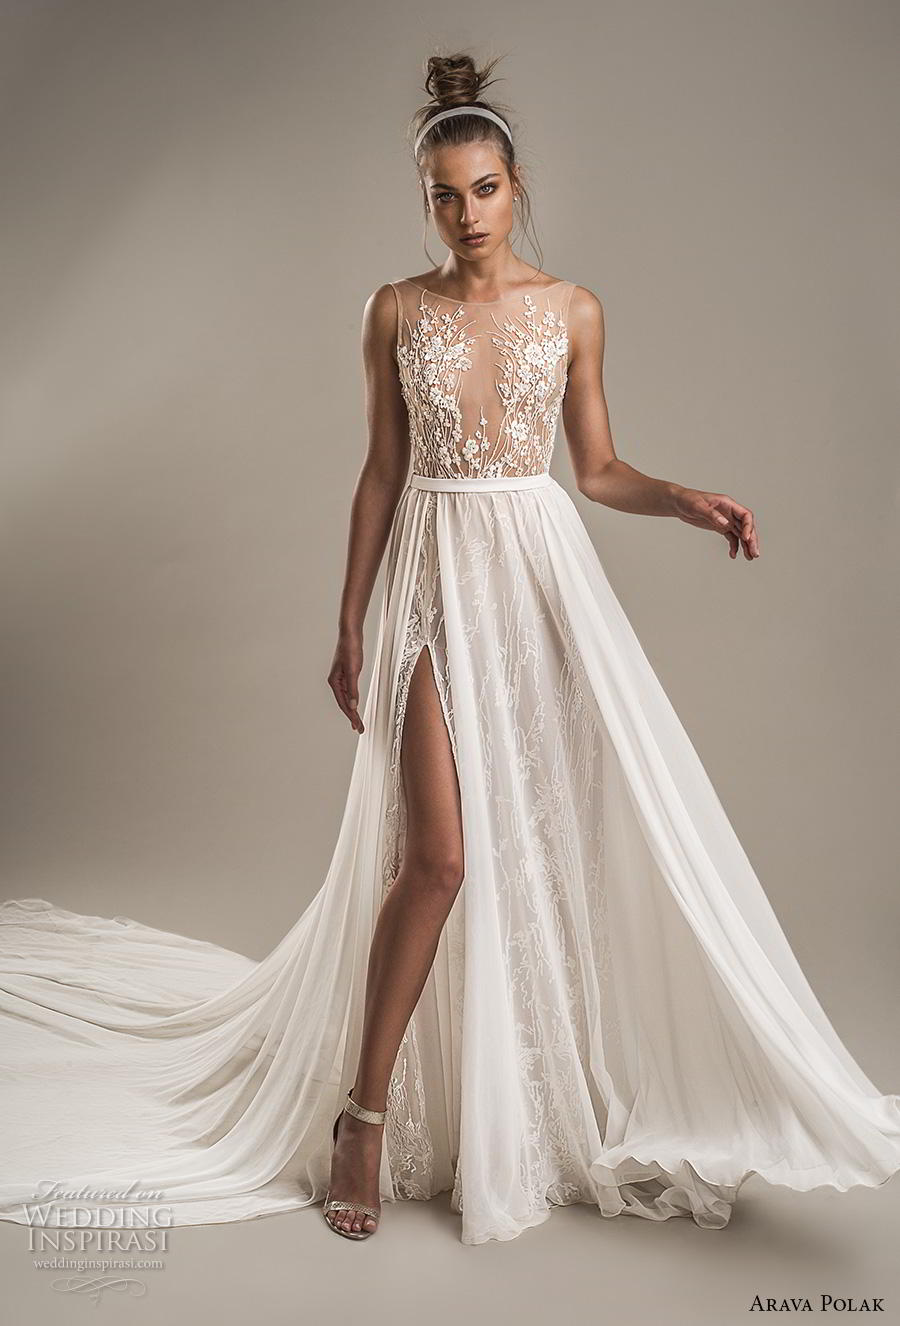 arava polak 2019 bridal sleeveless bateau neckline heavily embellished bodice slit skirt romantic soft a line wedding dress backless v back chapel train (5) mv